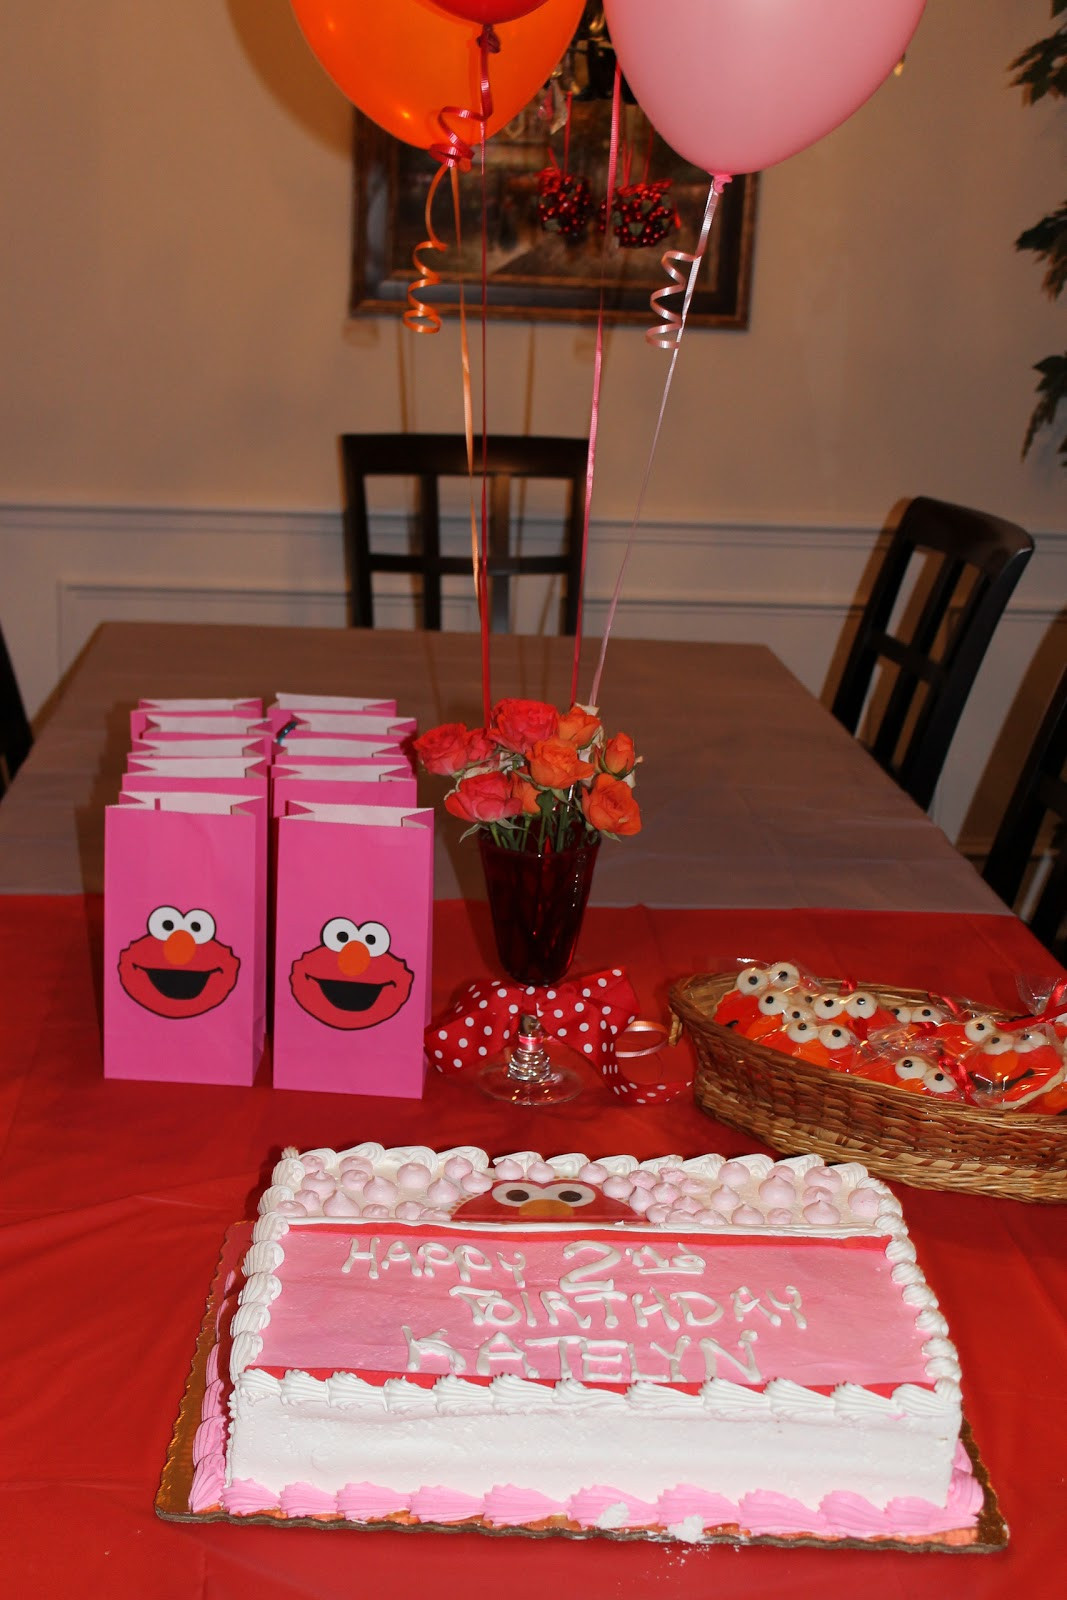 Best ideas about Elmo Birthday Party . Save or Pin Desperate Craftwives Elmo Birthday Party Now.